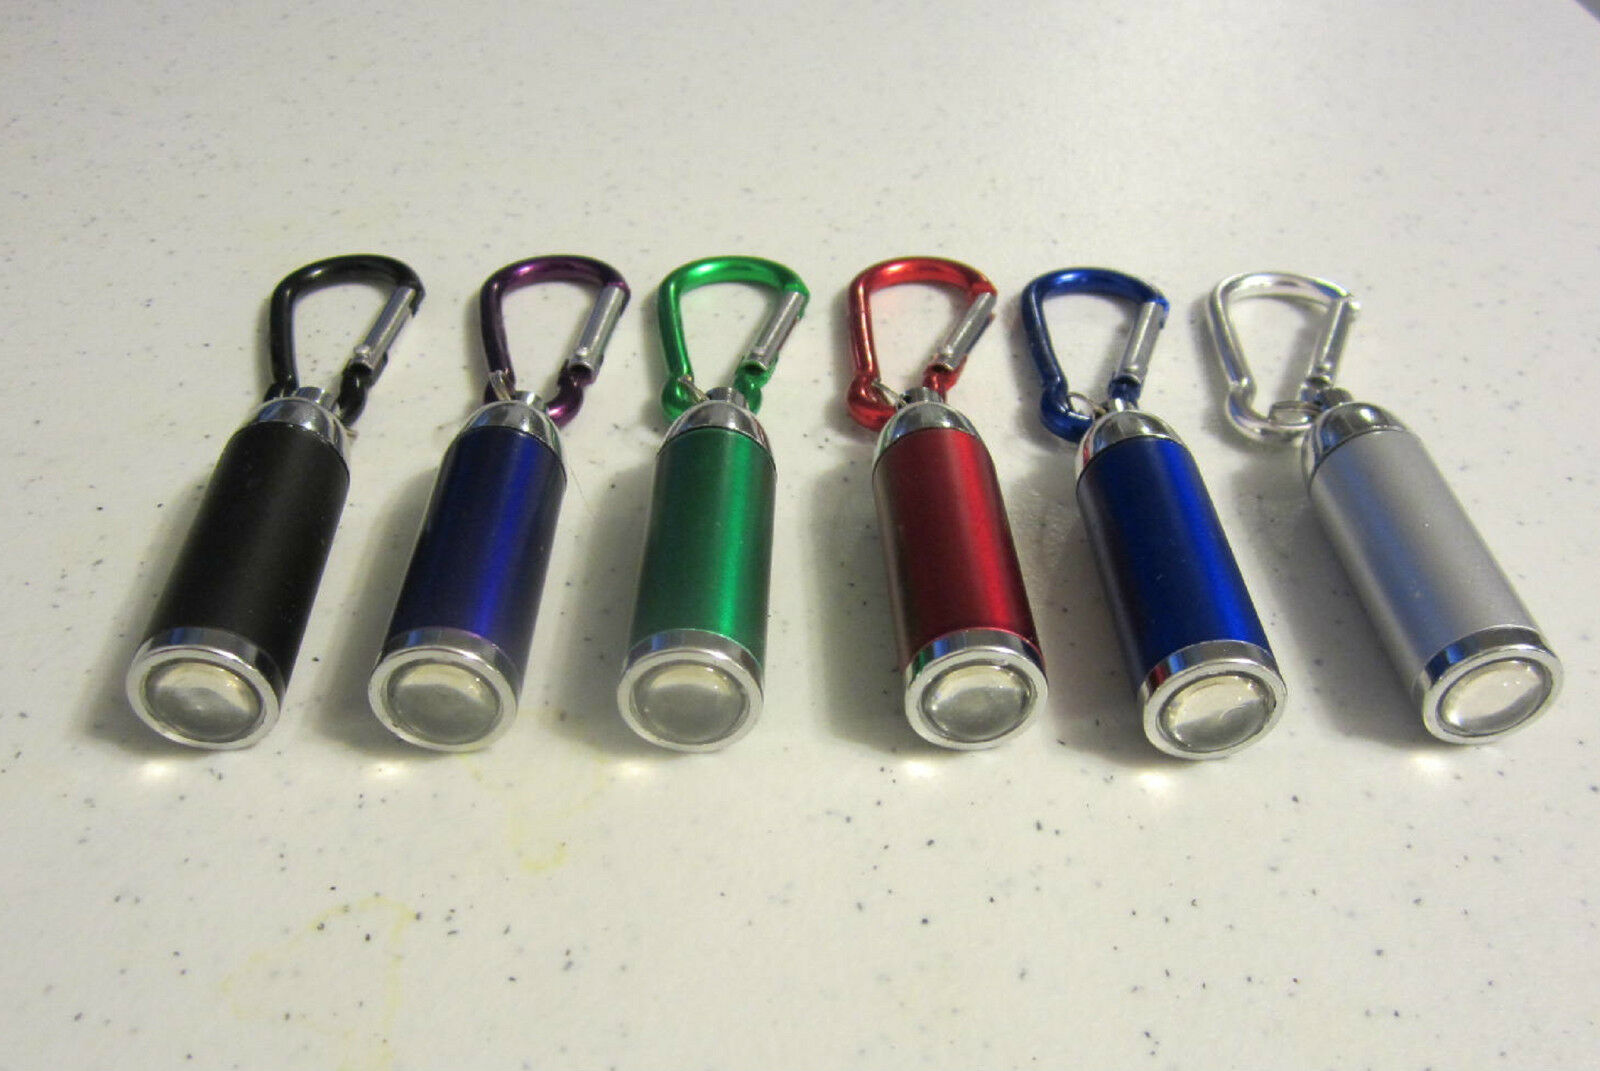 60 NEW CARABINER LED FLASHLIGHT KEYCHAINS WITH ZOOMABLE ZOOMABLE WITH LIGHT KEY CHAIN RING a65487